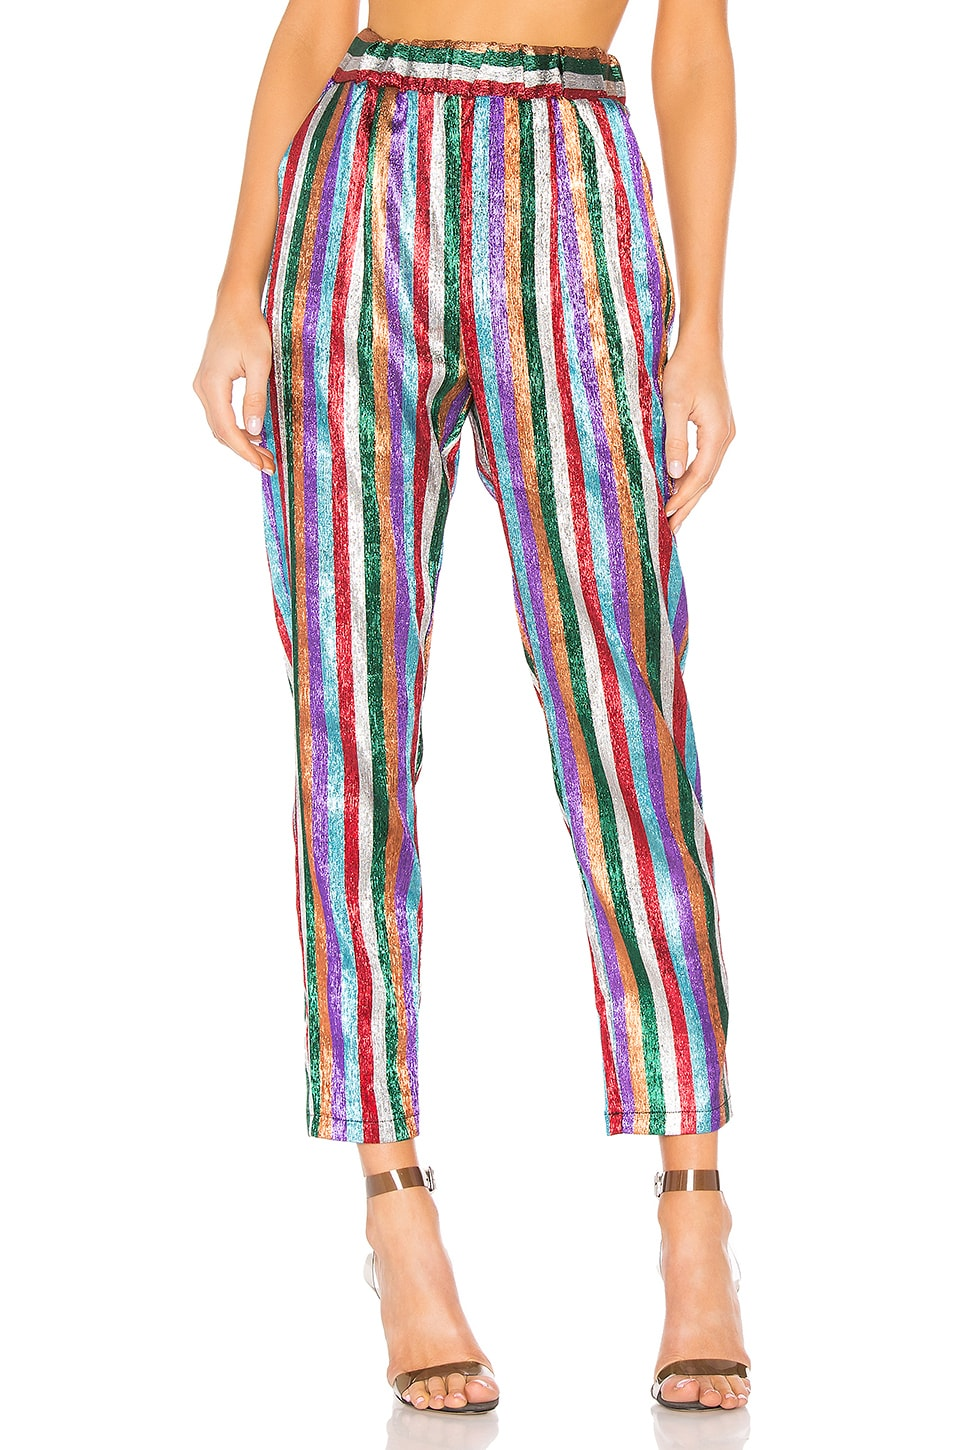 NONchalant Piper Pant in Rainbow